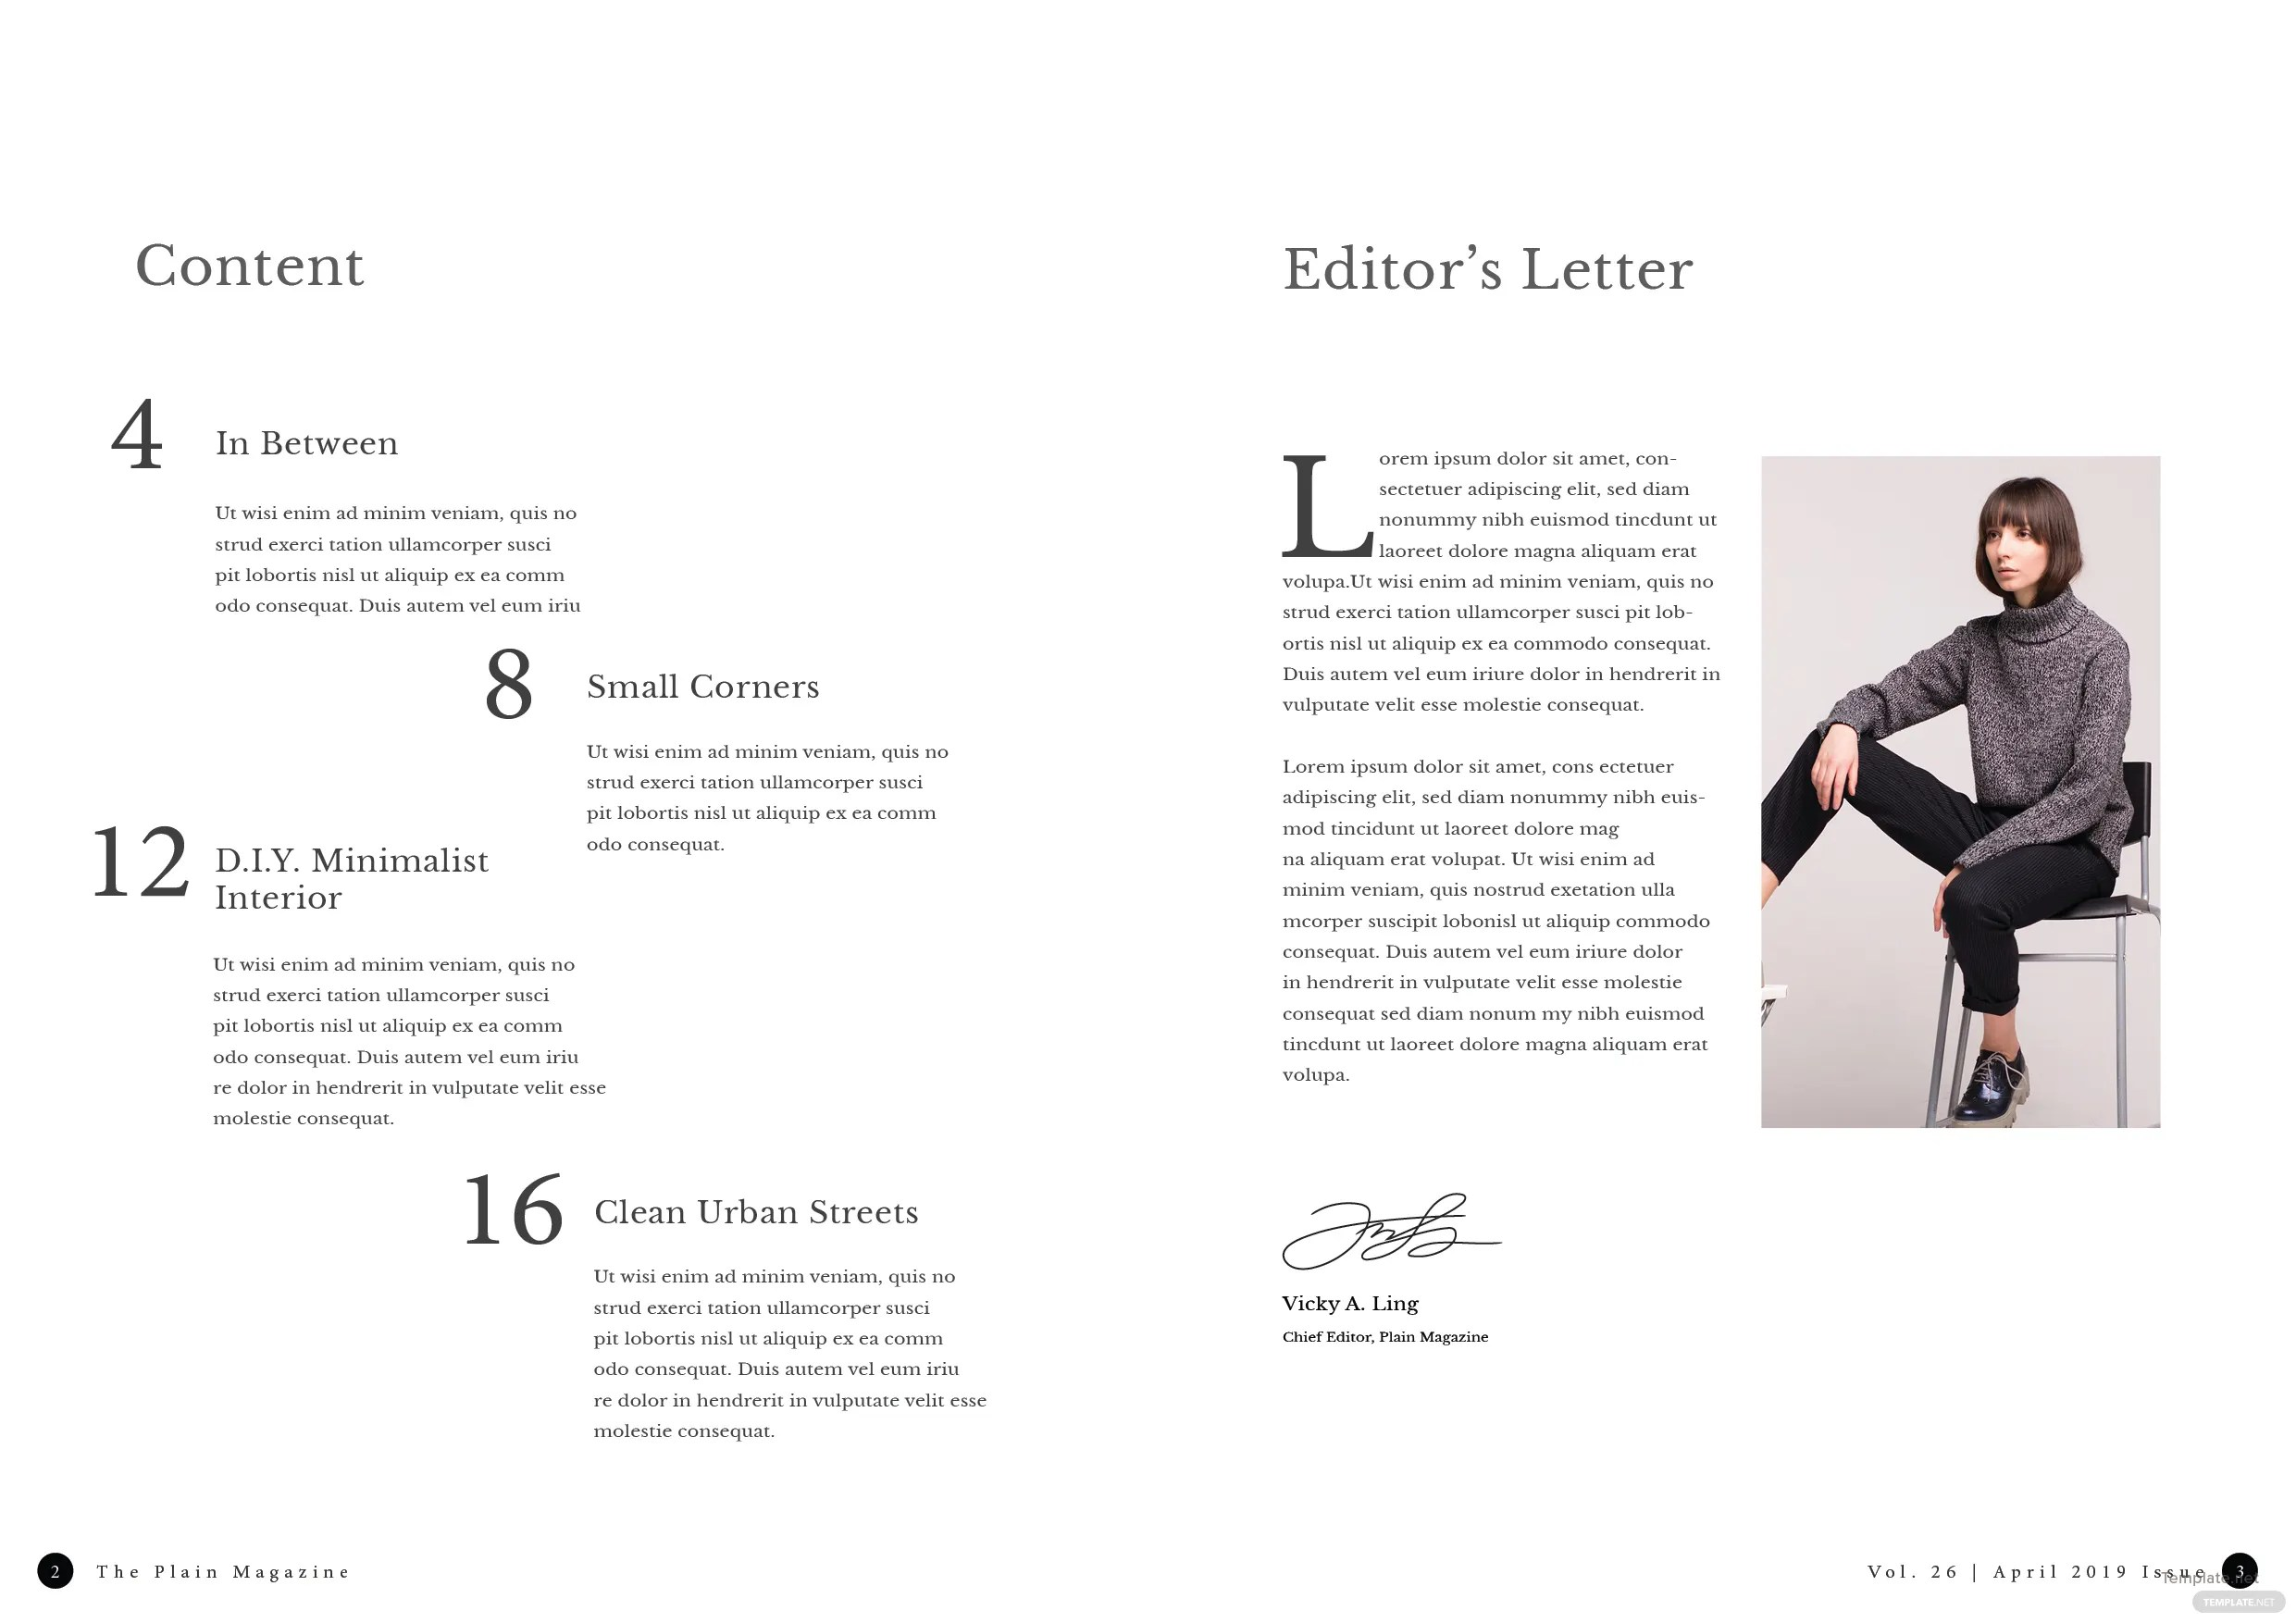 Free Minimalist Lookbook Magazine Template in Adobe